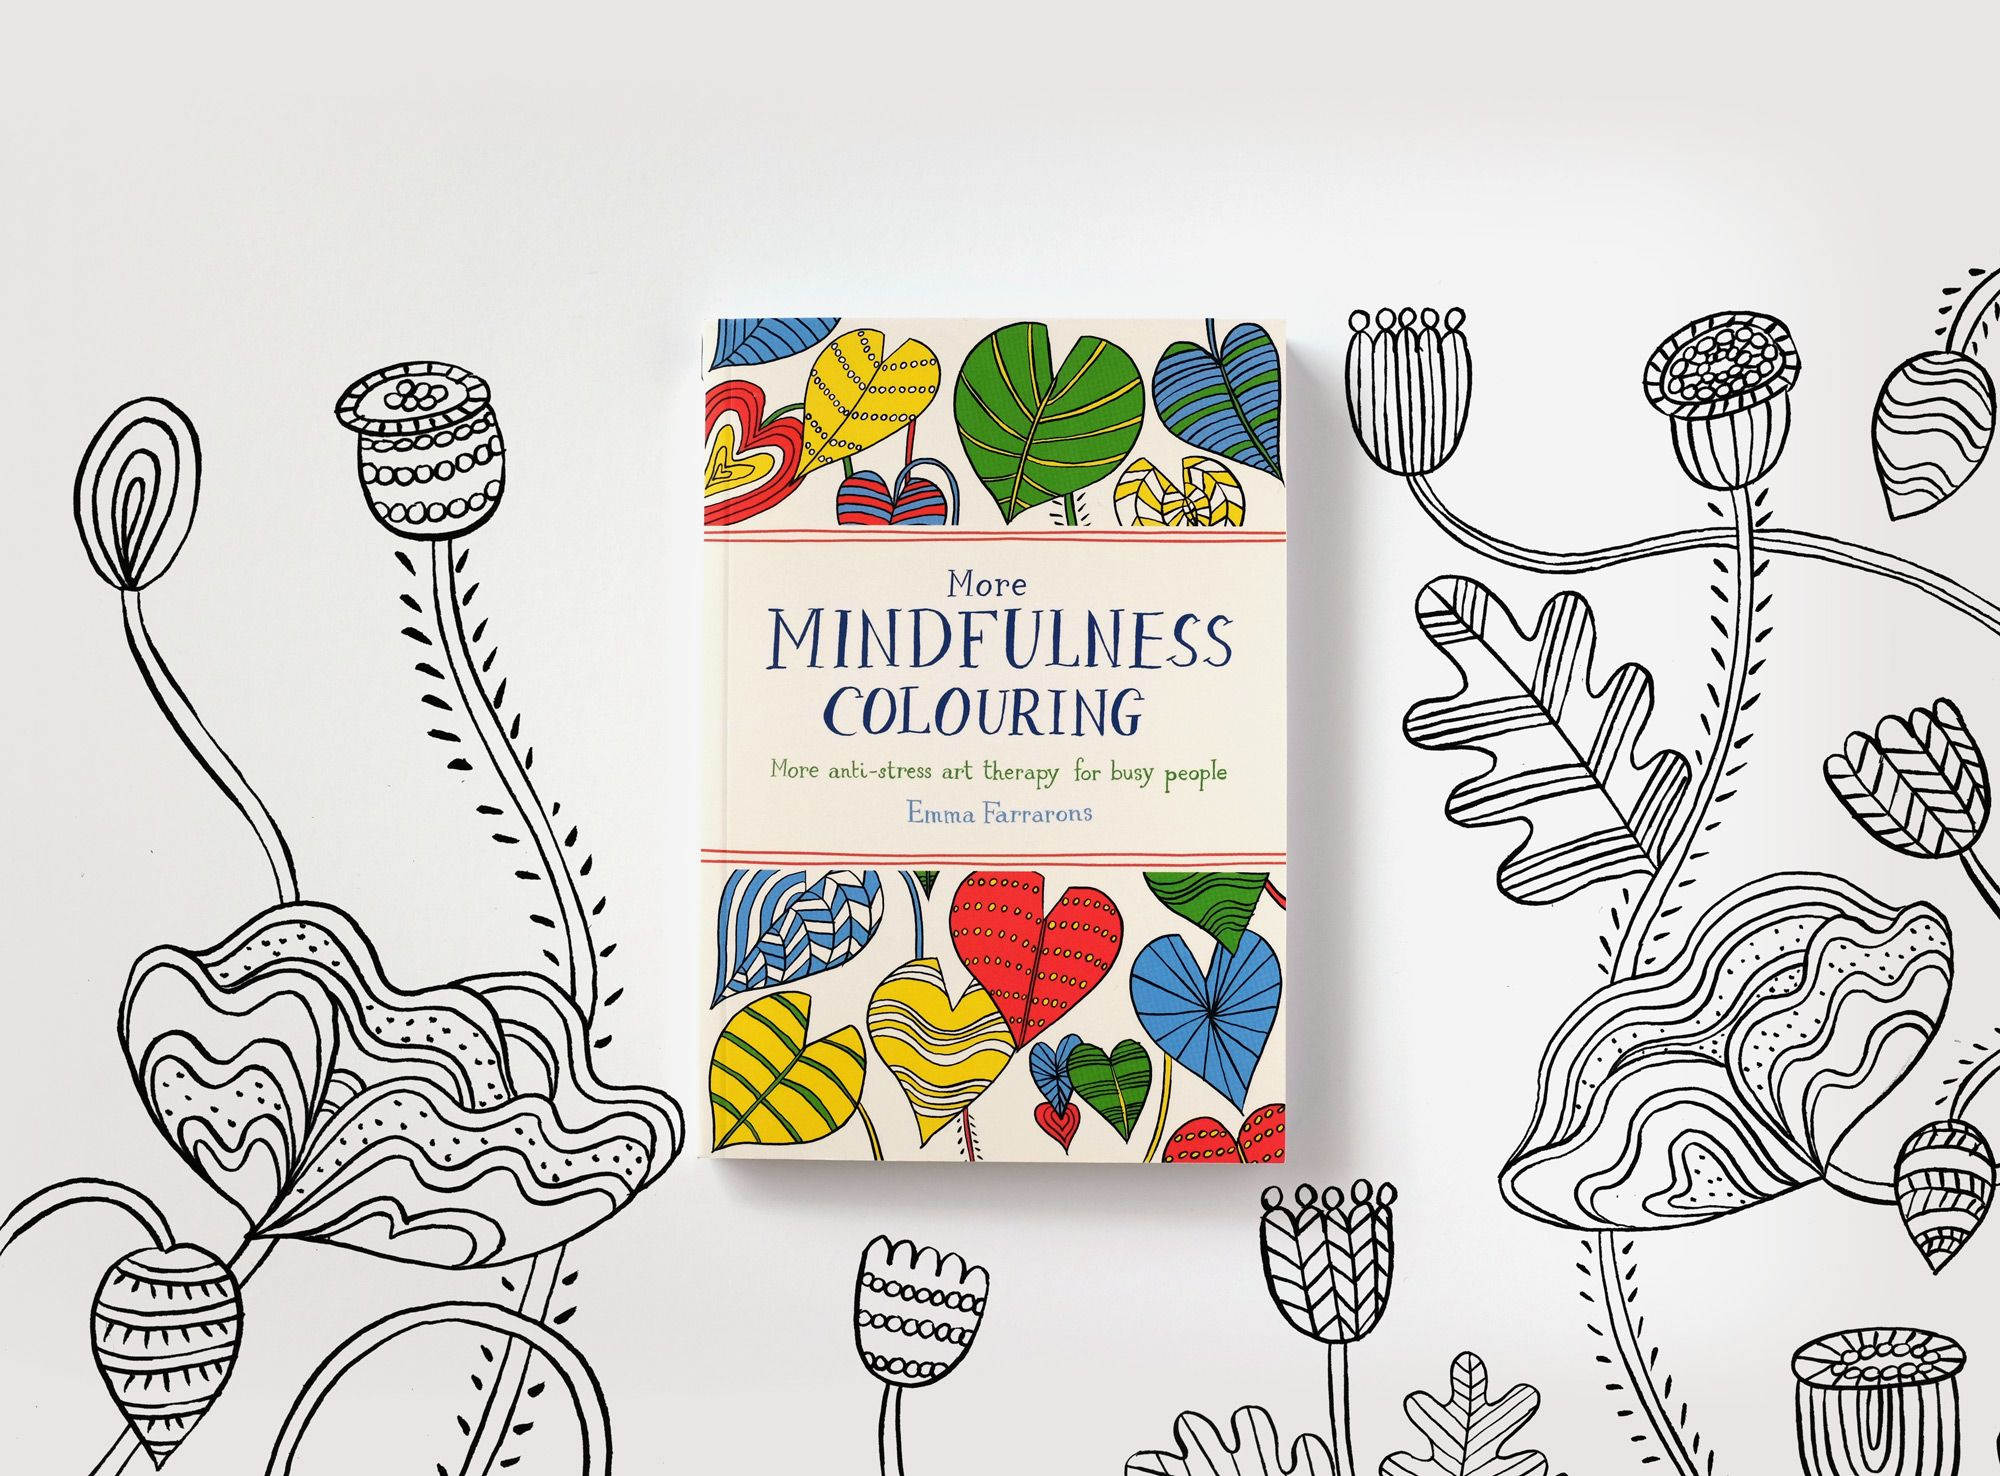 More Mindfulness Colouring Anti Stress Art Therapy For Busy People Is Published By